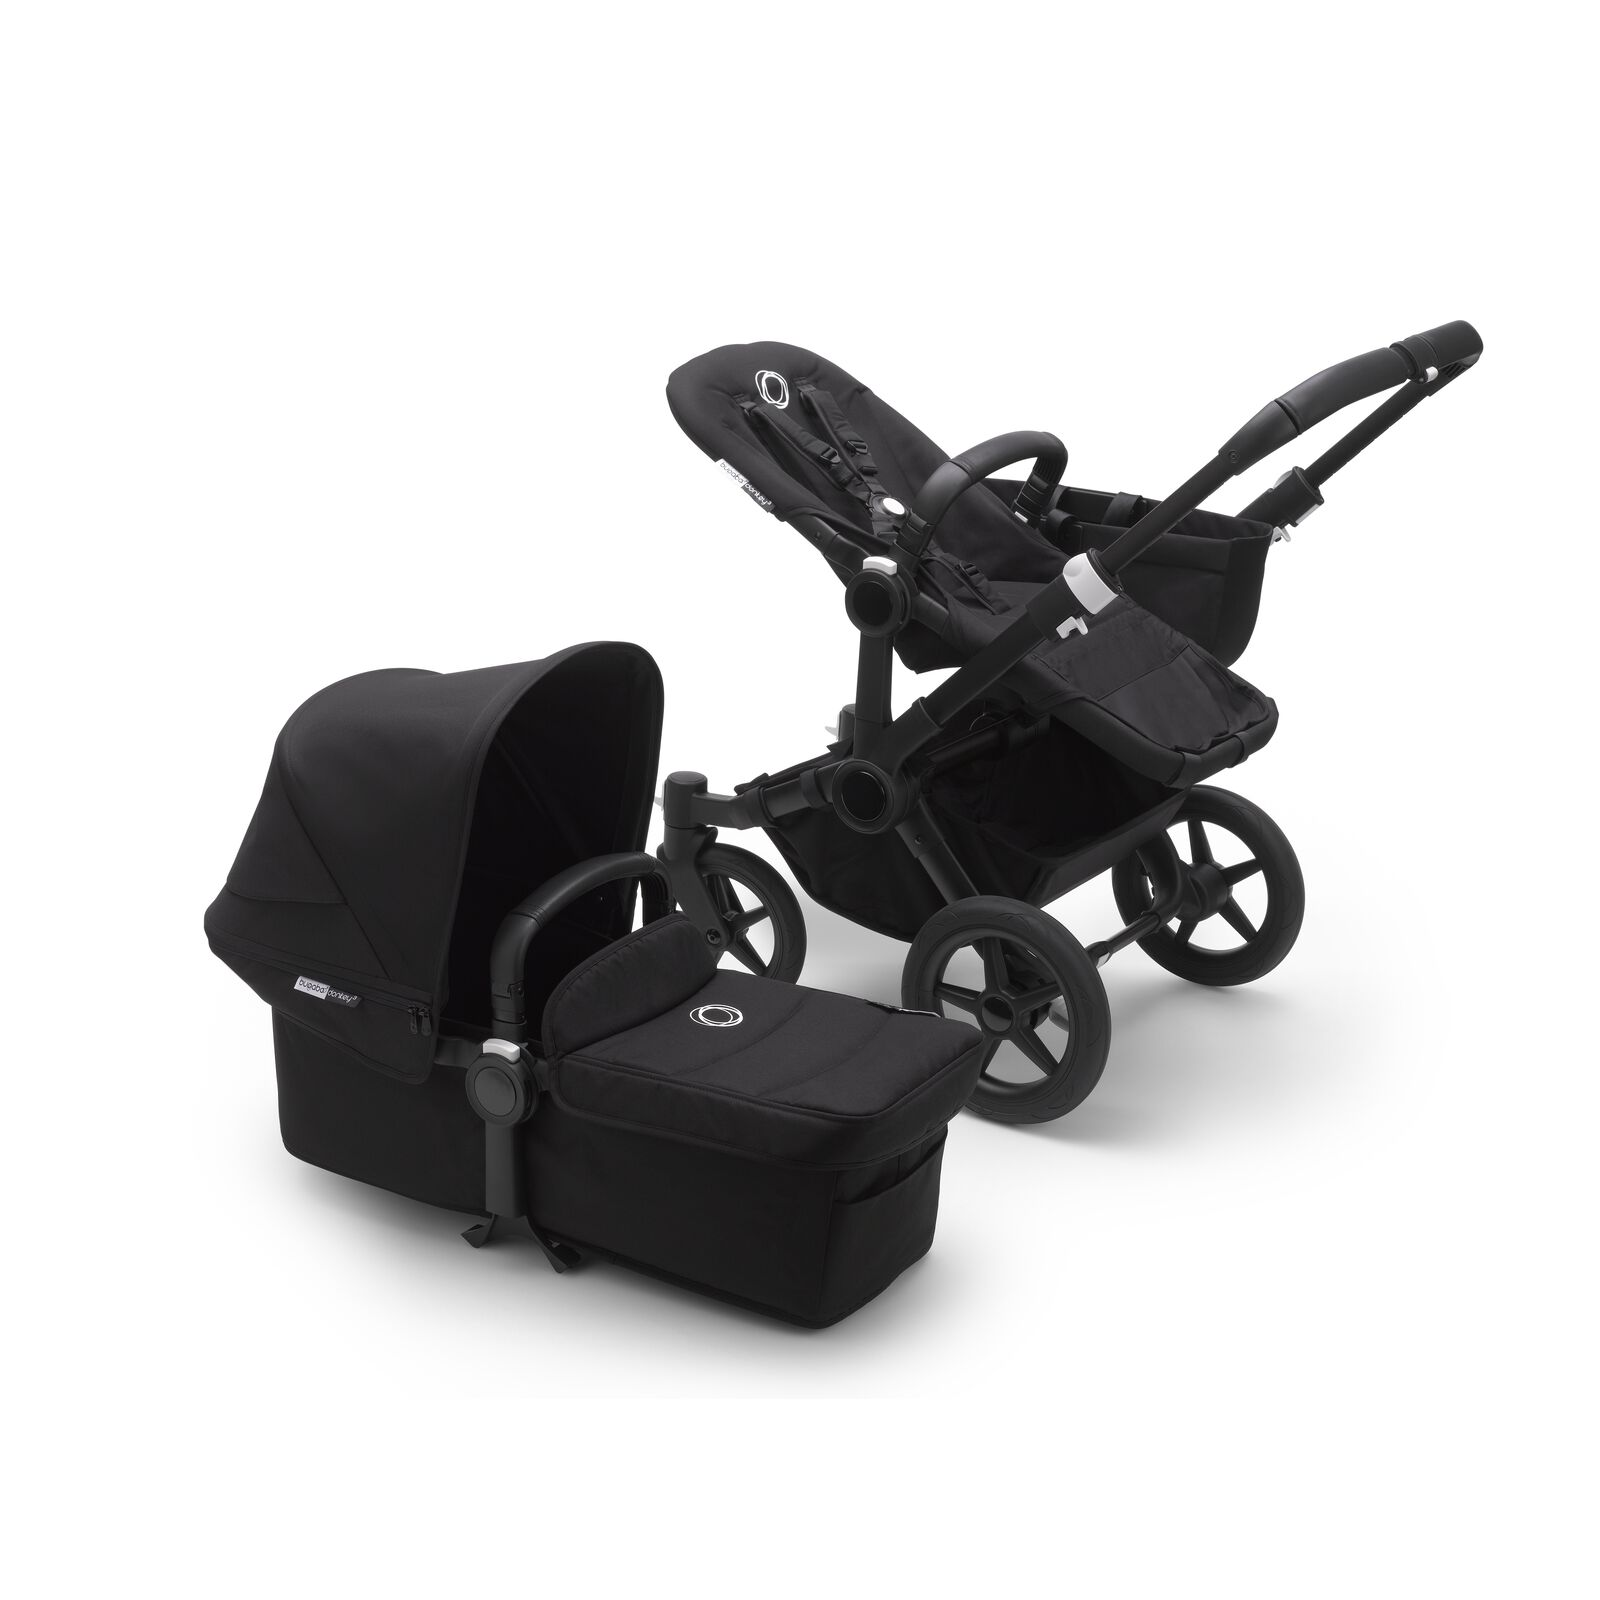 Bugaboo Donkey 3 mono bassinet and seat stroller